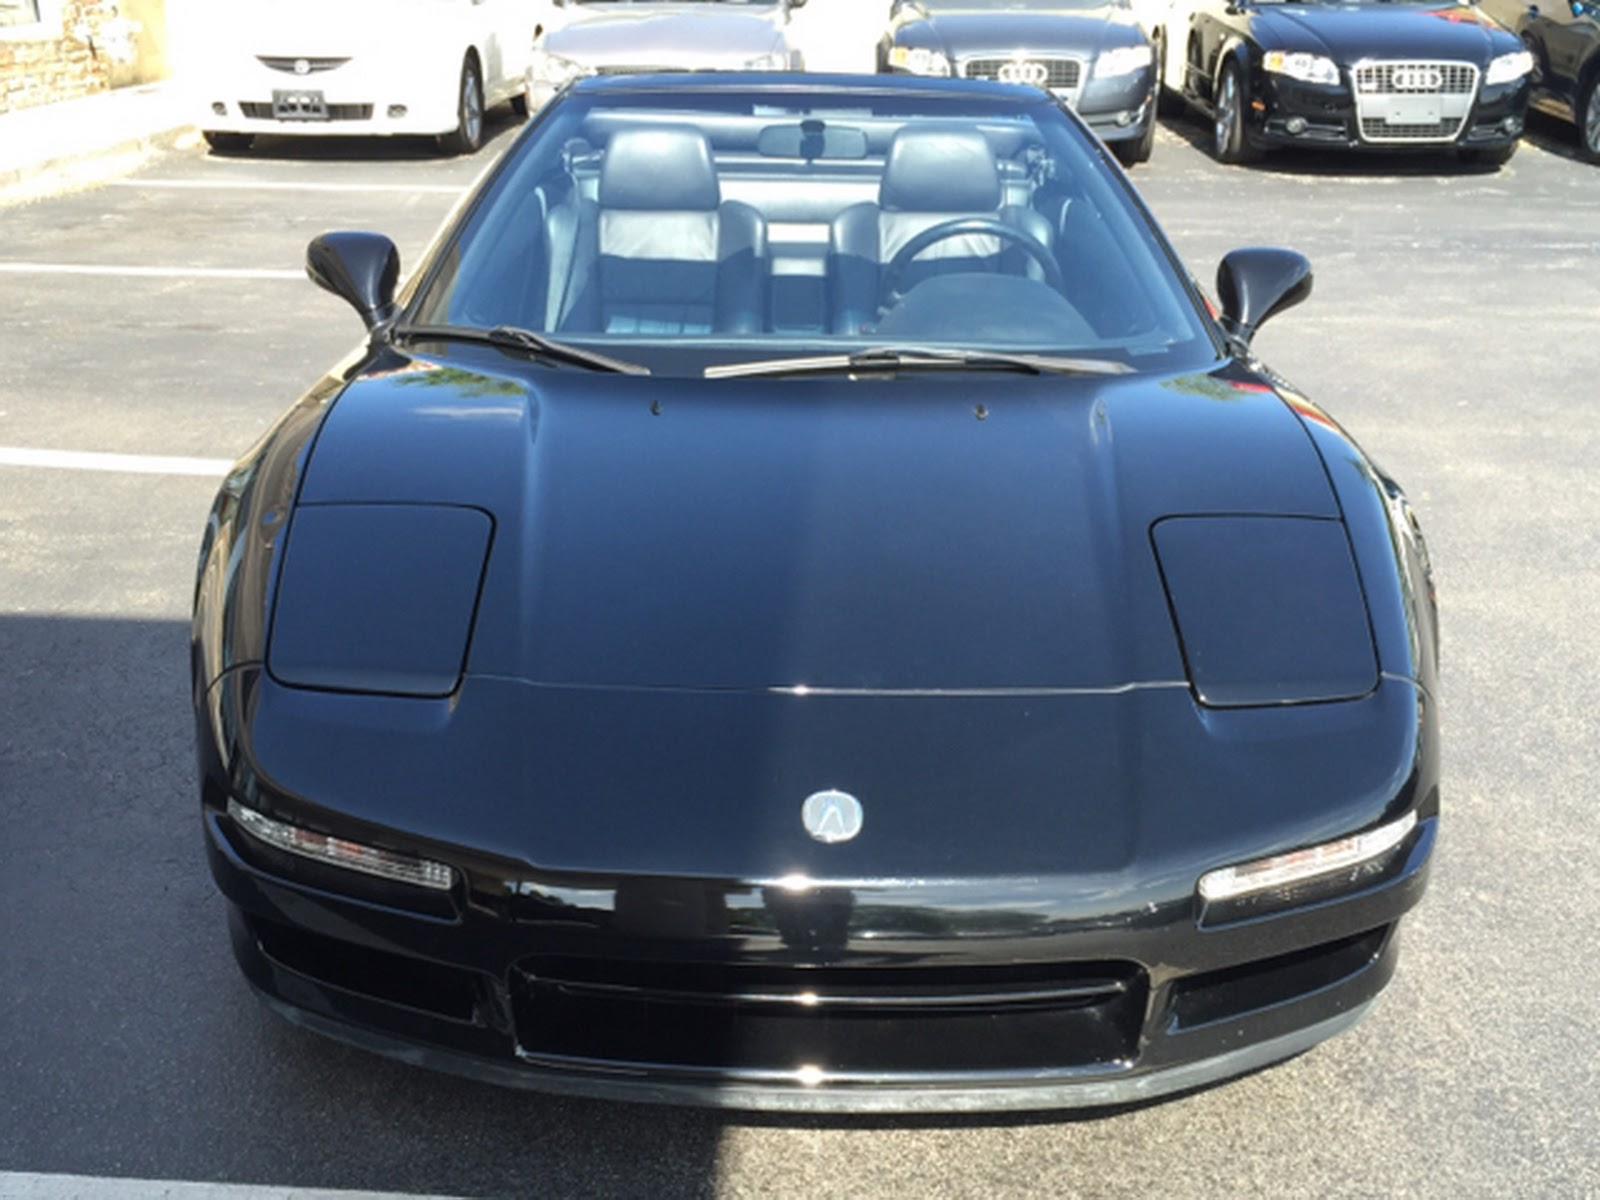 Someone Chopped An Acura Nsx Into A Convertible And Is Now